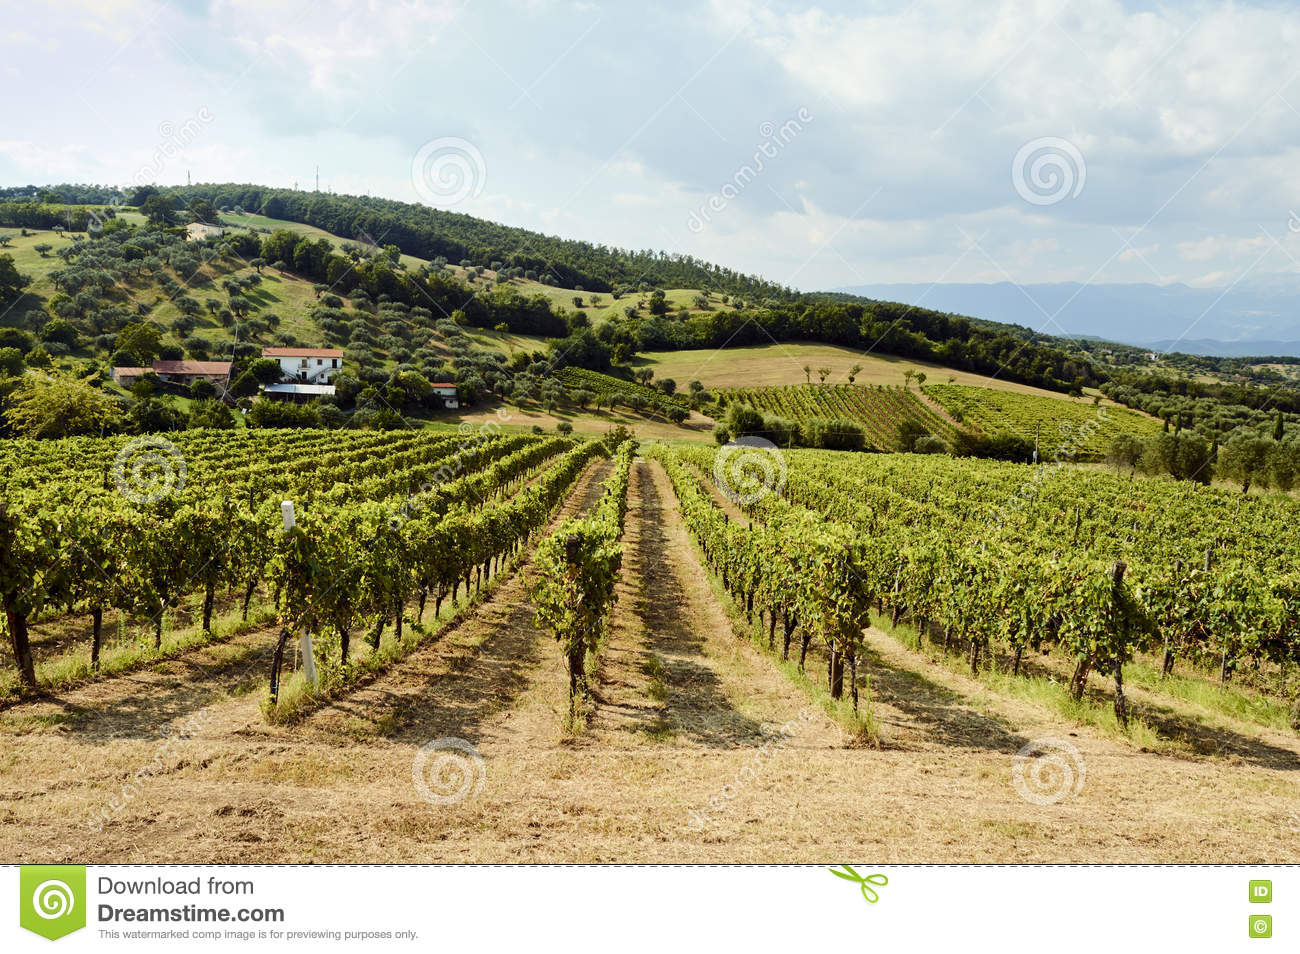 Holiday in the countryside on the hills, visiting the vineyards of pallagrello, typical and valuable wine produced in